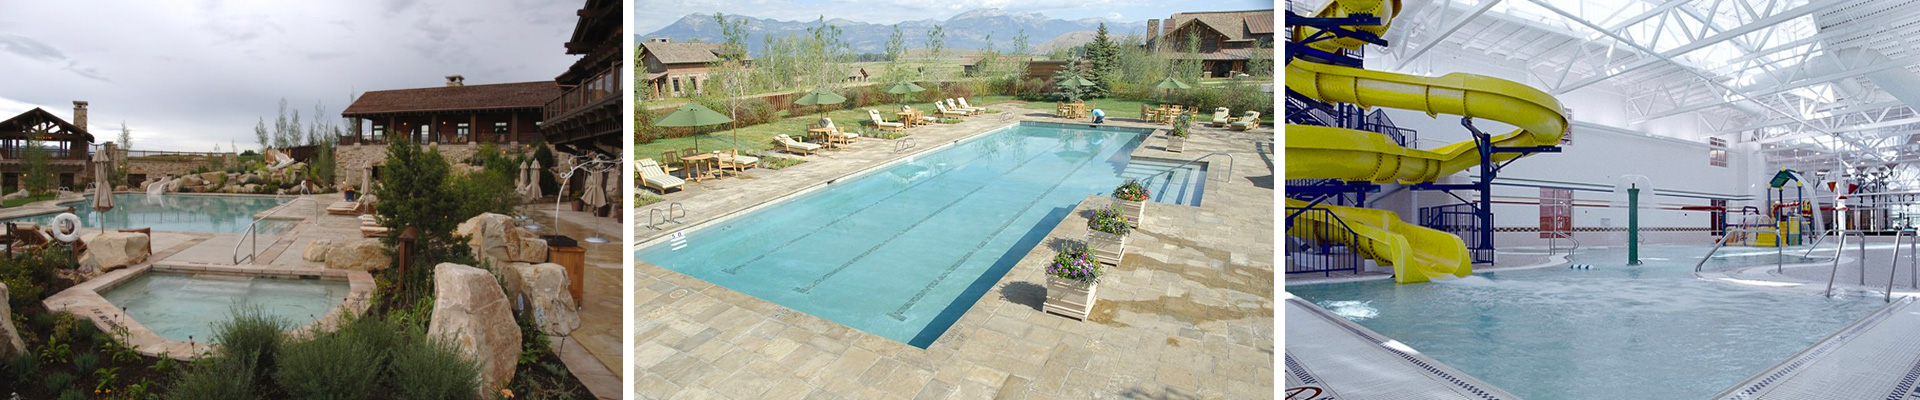 Commercial Inground Pools Aquatech Utah